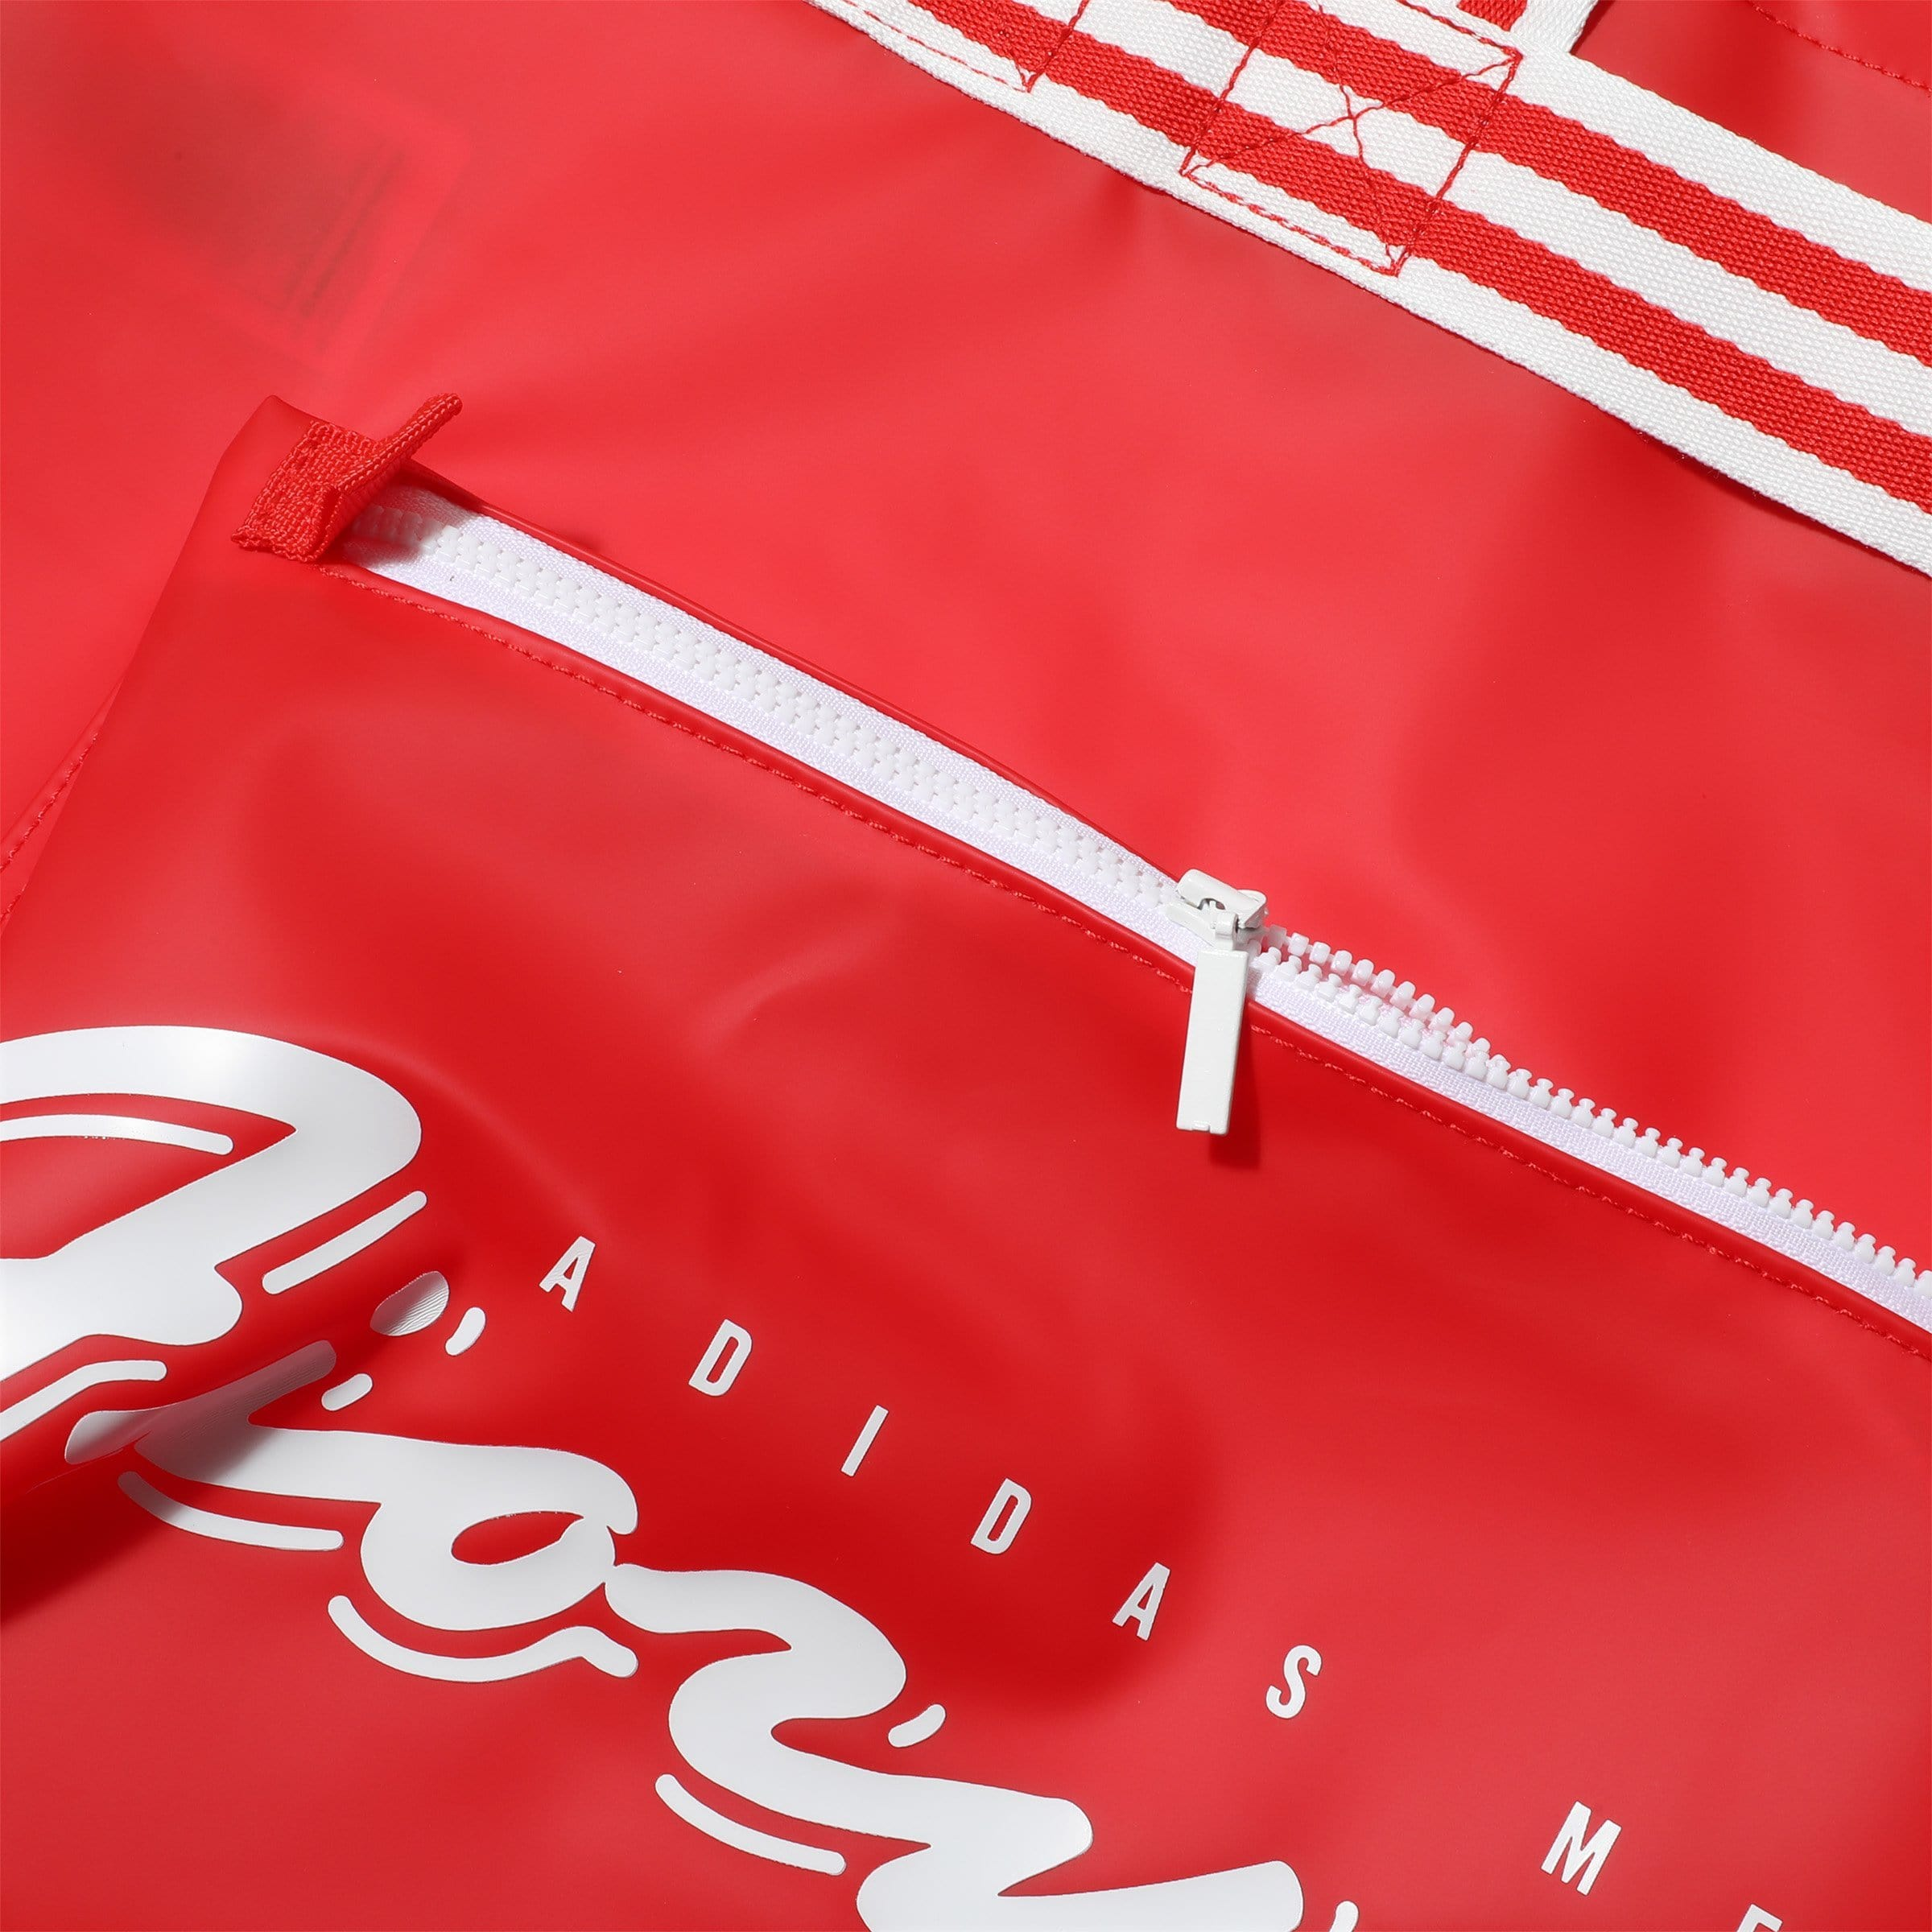 Adidas Bags & Accessories RED / O/S x Fiorucci STRIPE TOTE BAG